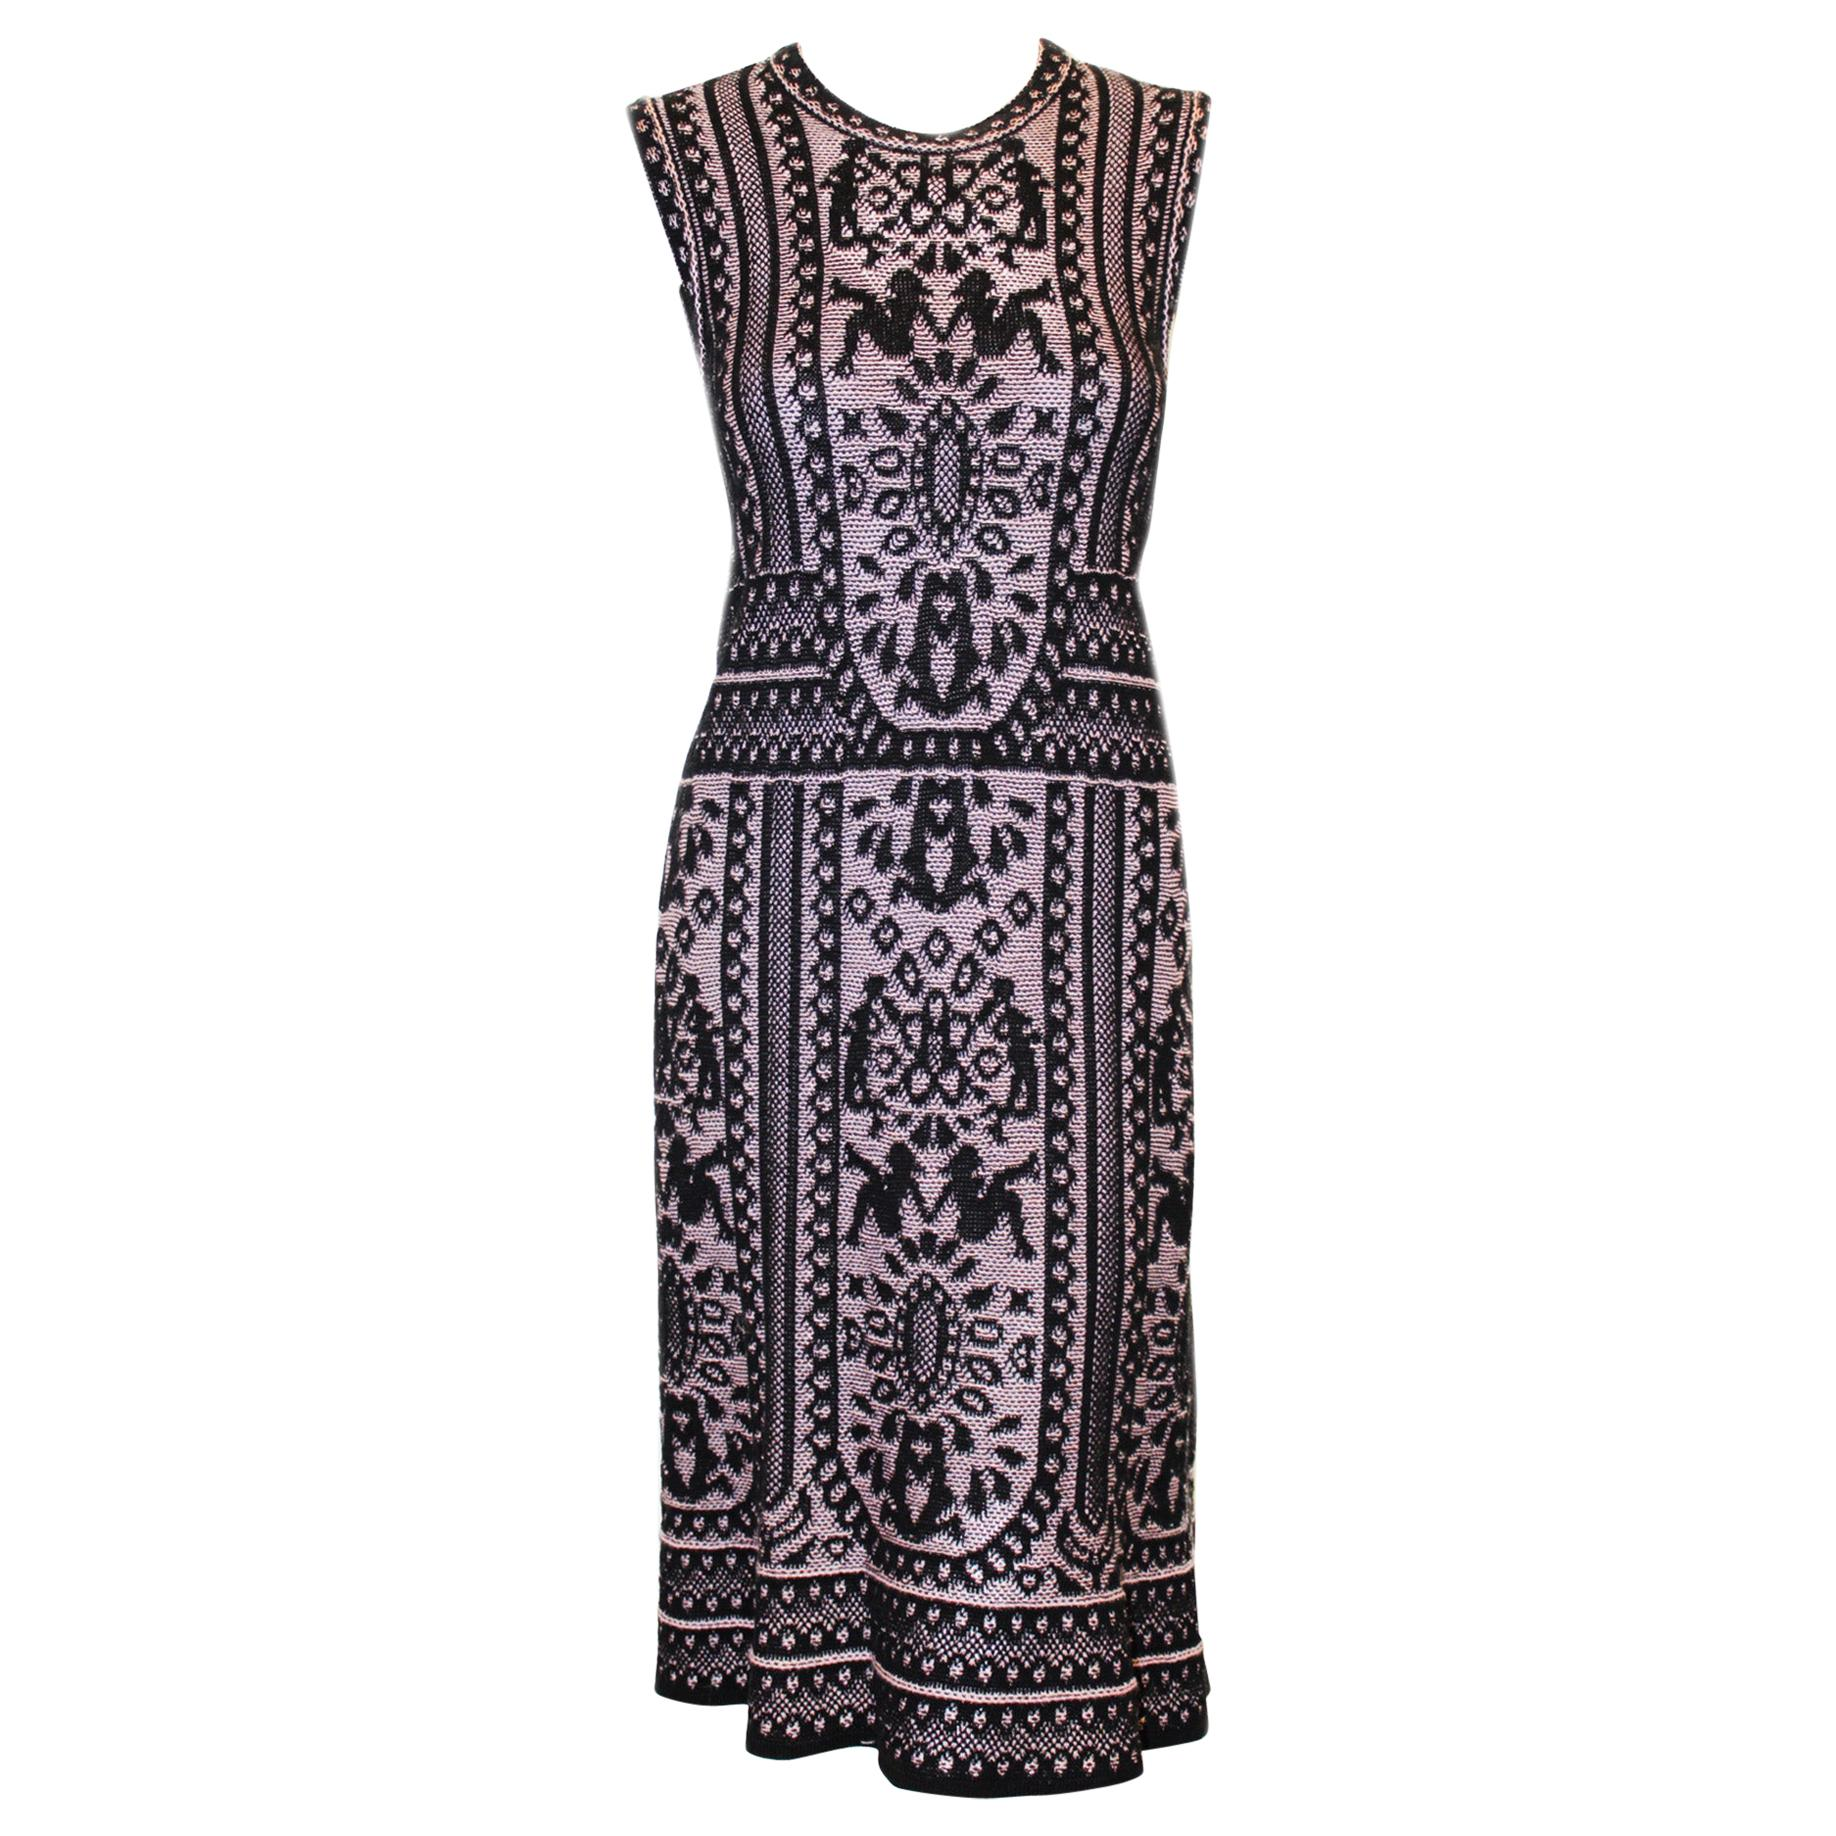 1a54c8097d4eb Vintage Missoni: Dresses, Sweaters & More - 508 For Sale at 1stdibs